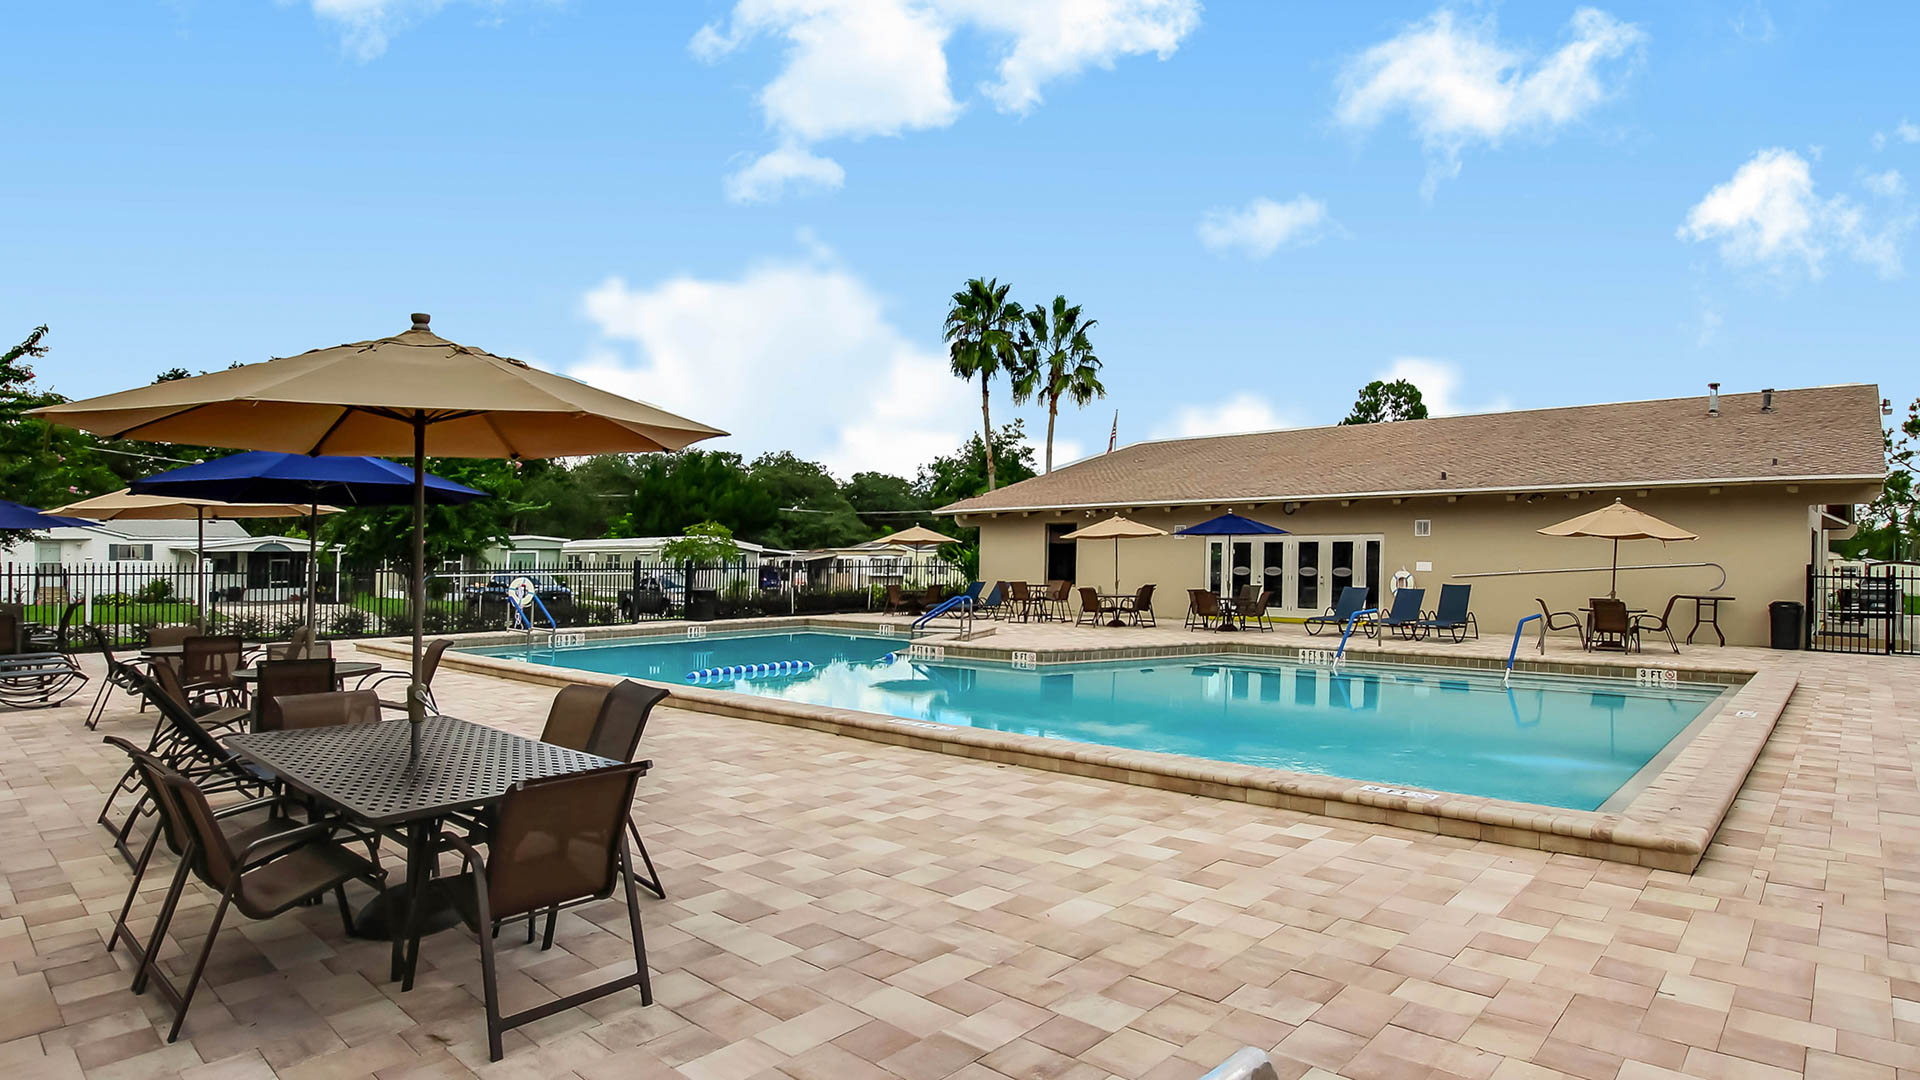 Swimming Pool at Carriage Cove Manufactured Homes Community in Sanford, FL